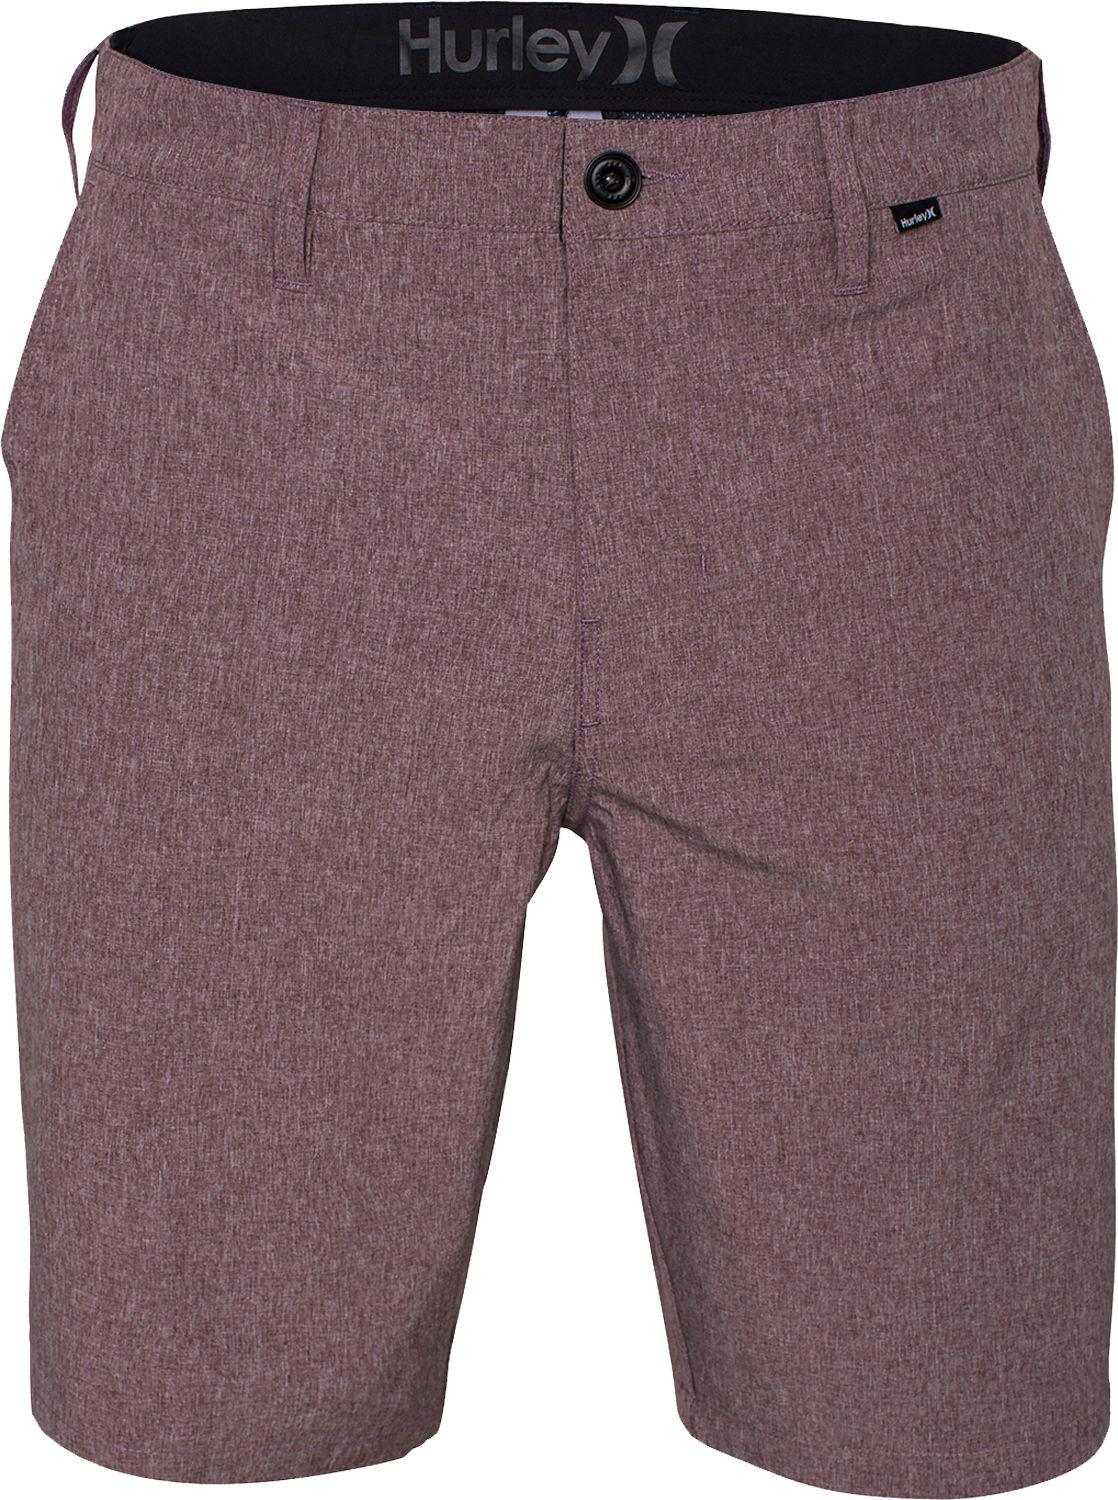 c61231812e16 Lyst - Hurley Phantom Boardwalk Hybrid Shorts in Purple for Men